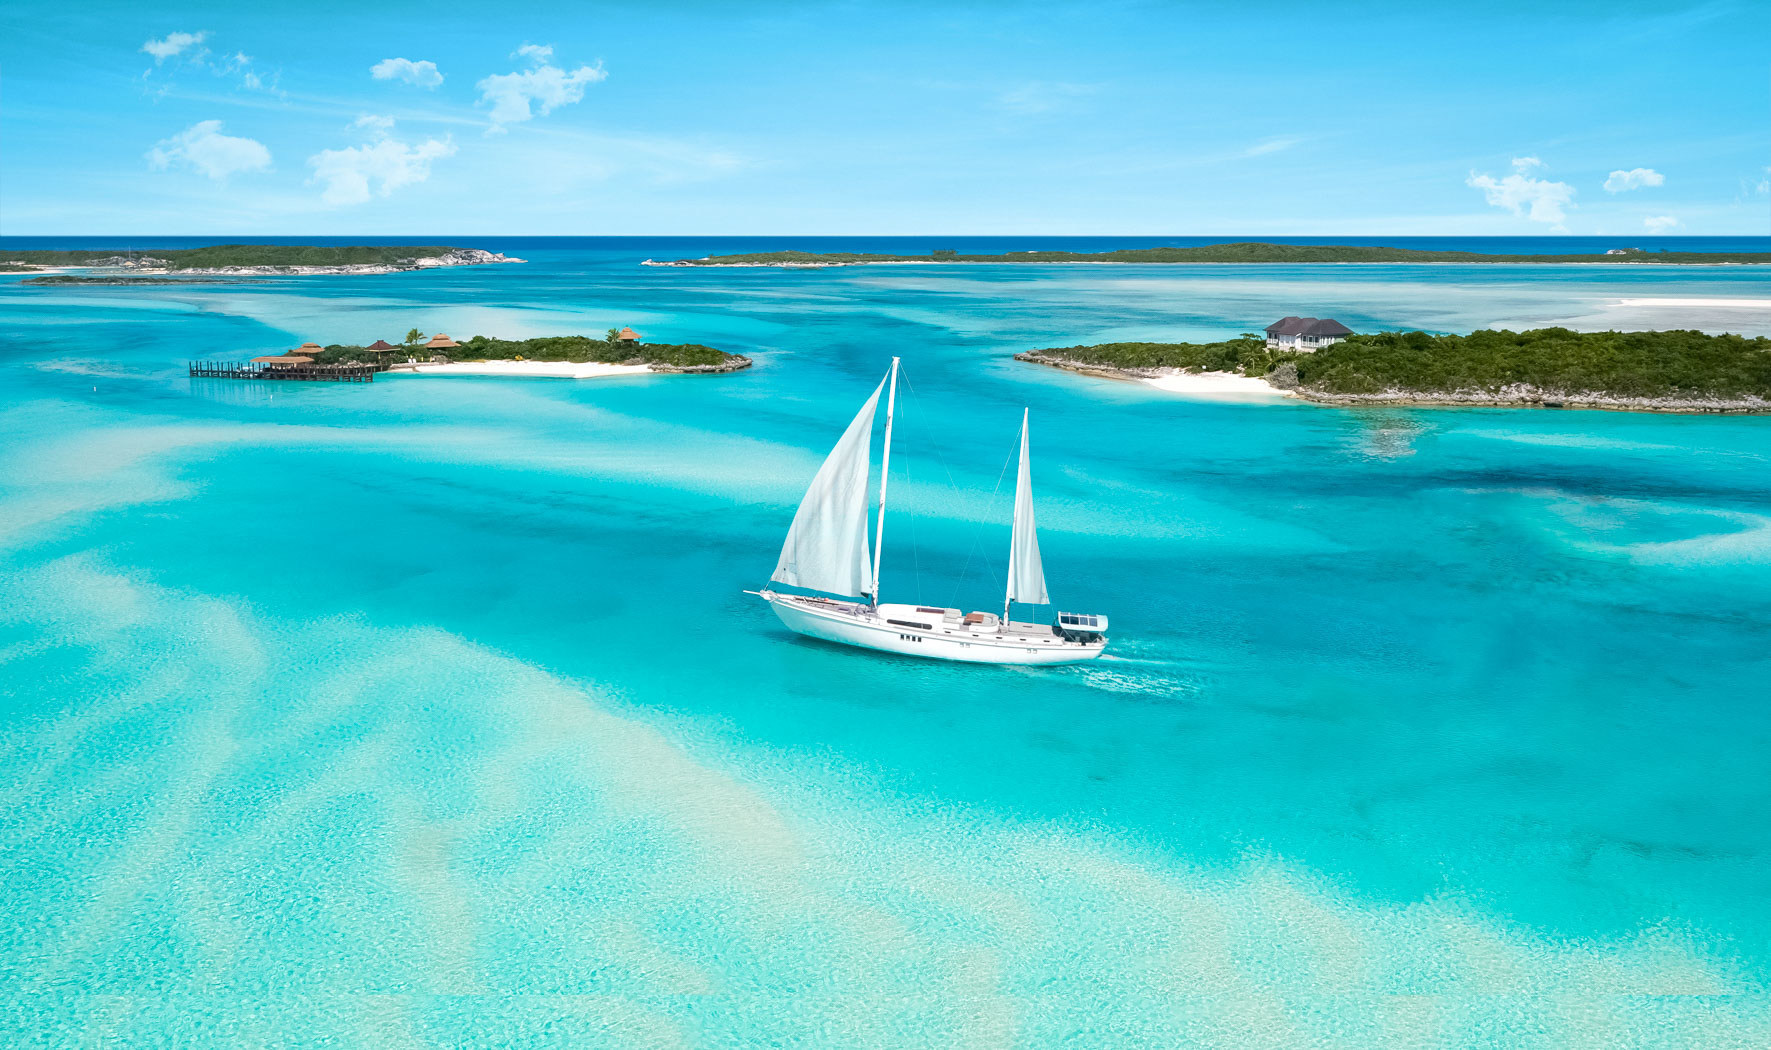 2020 In Review: The Bahamas Ministry of Tourism & Aviation Reflects on a Difficult Year and Looks Forward to Brighter Days to Come